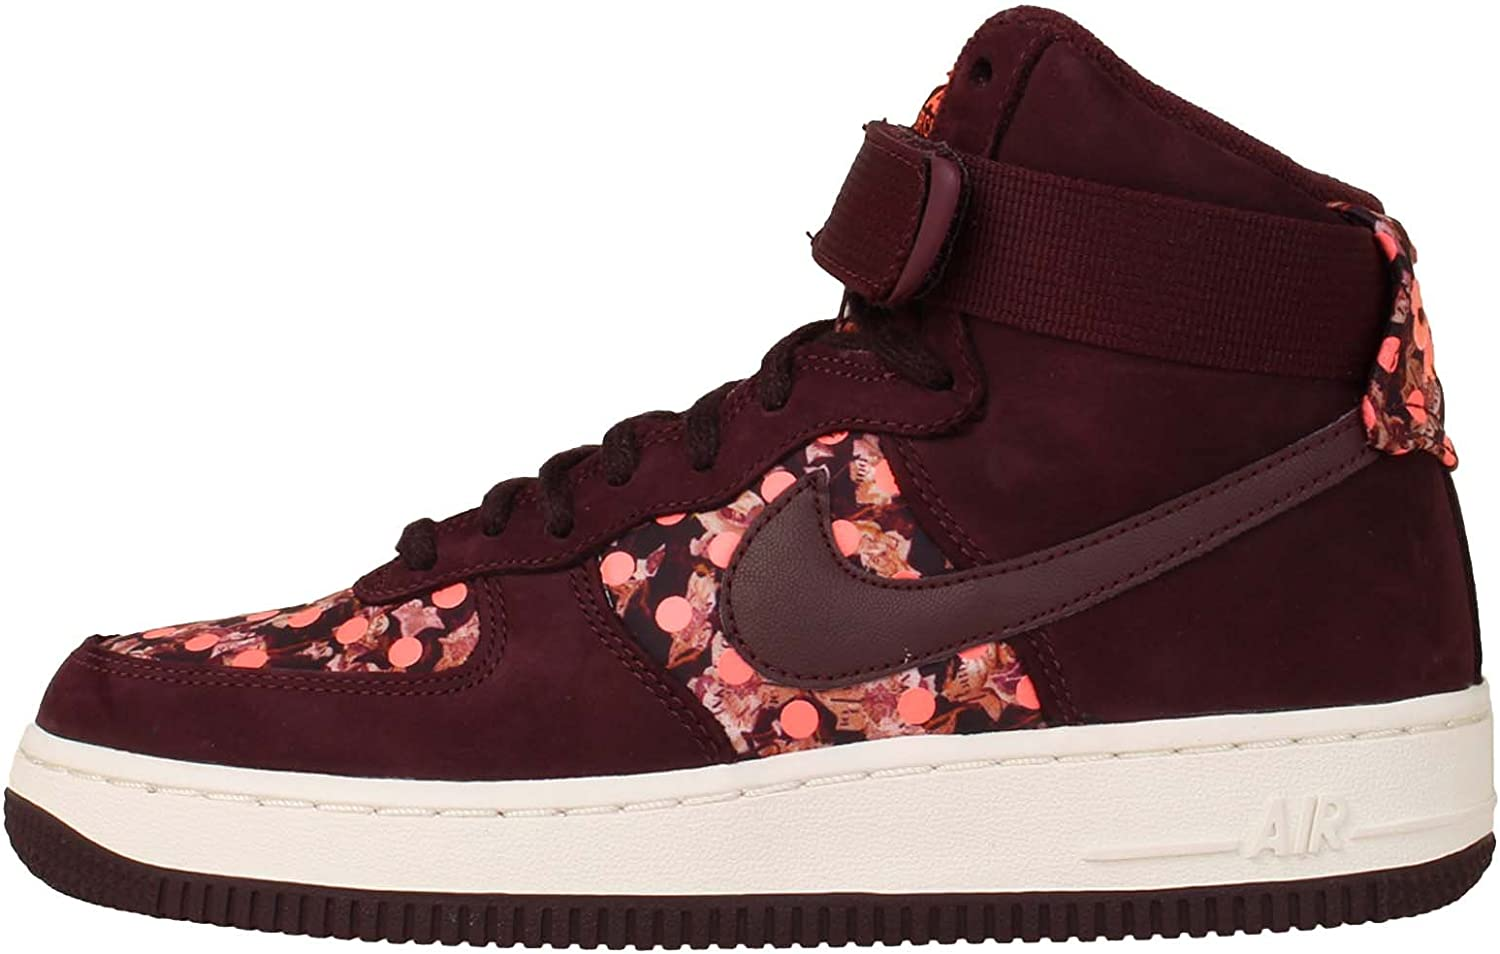 Nike Womens Air Force 1 HI Faux Suede Strappy Fashion Sneakers